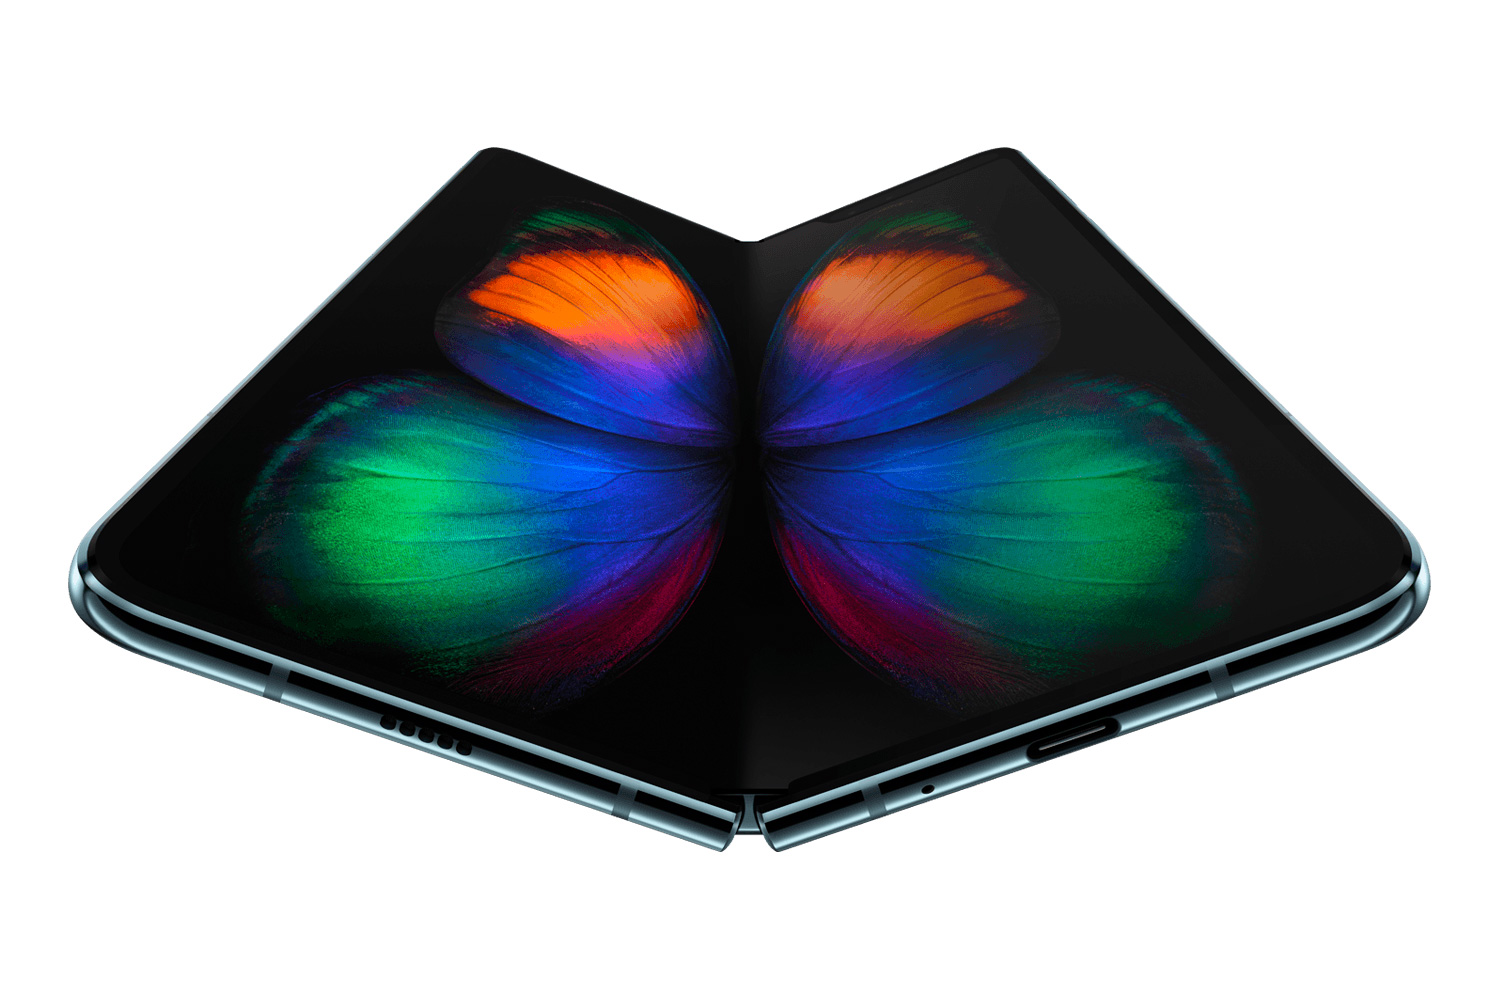 Samsung Introduces Galaxy Fold Phone at werd.com